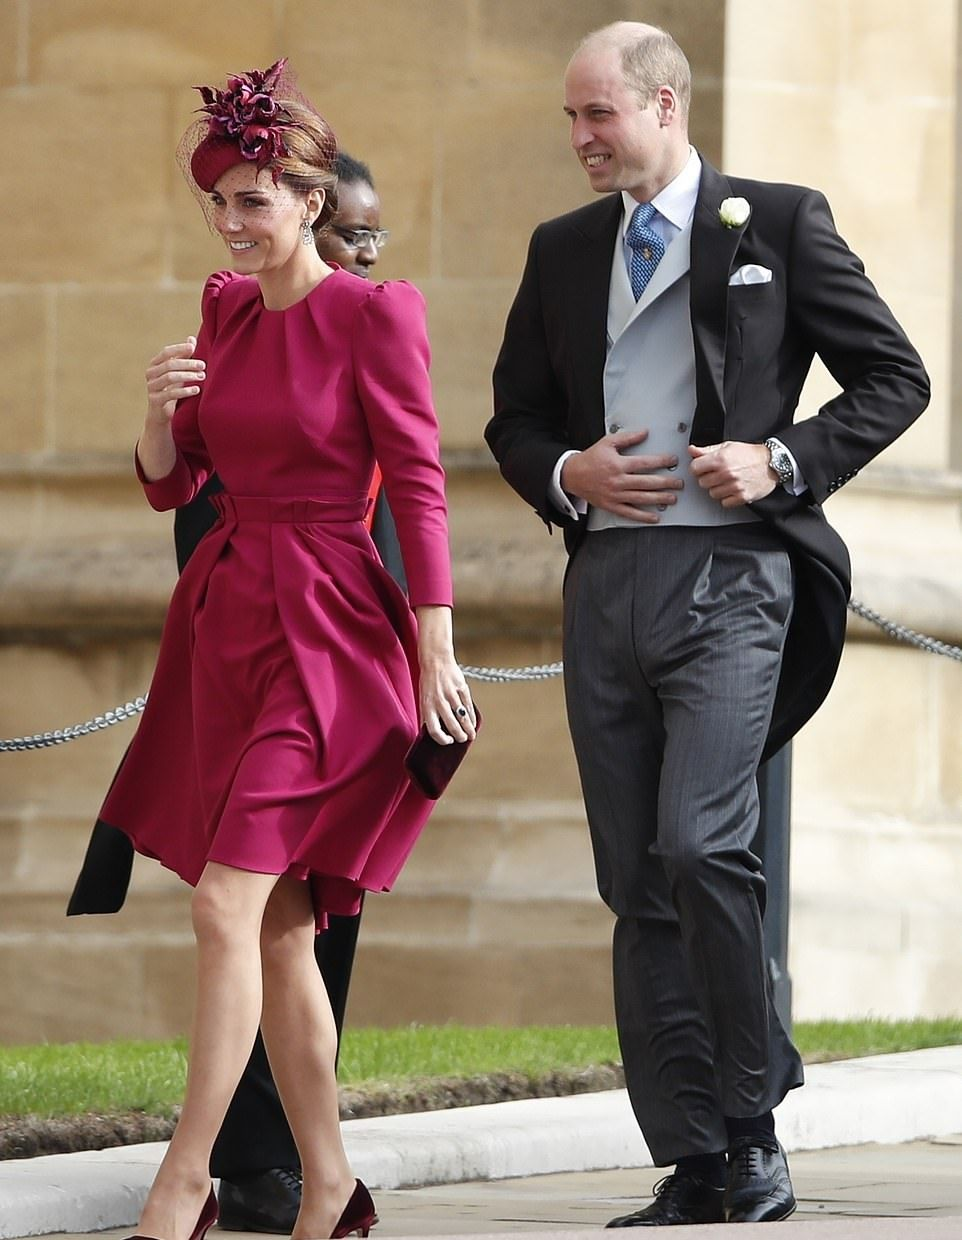 Gorgeous Pink Mcqueen For Duchess Of Cambridge At Royal Wedding